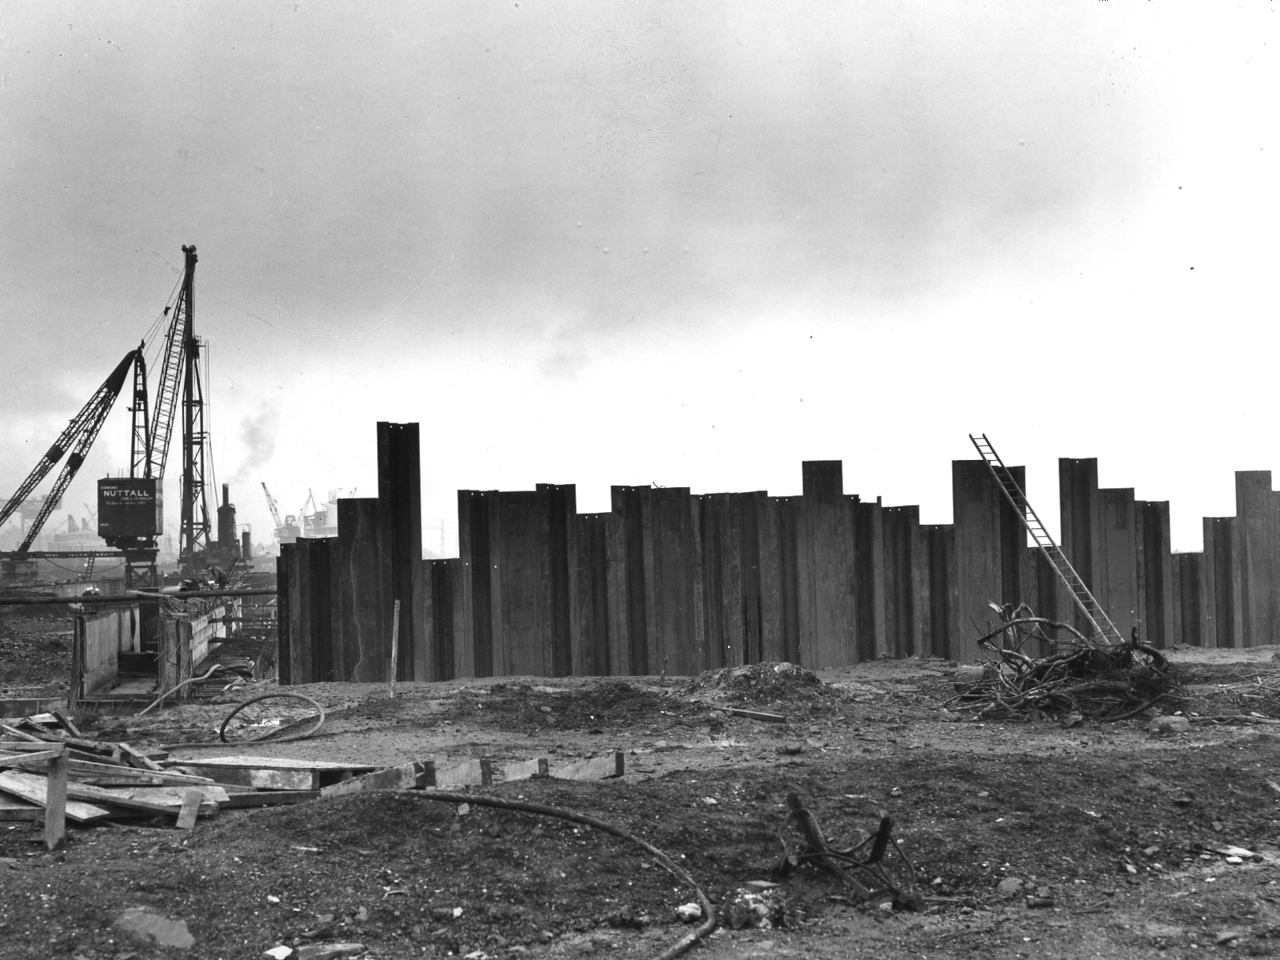 Steel sheet piling to Barge Berth complete - 15 tone derrick at Repair Quay moved to new position astride rear crane beam - Menck being moved ashore preparatory to moving to Barge Berth   21/12/1962